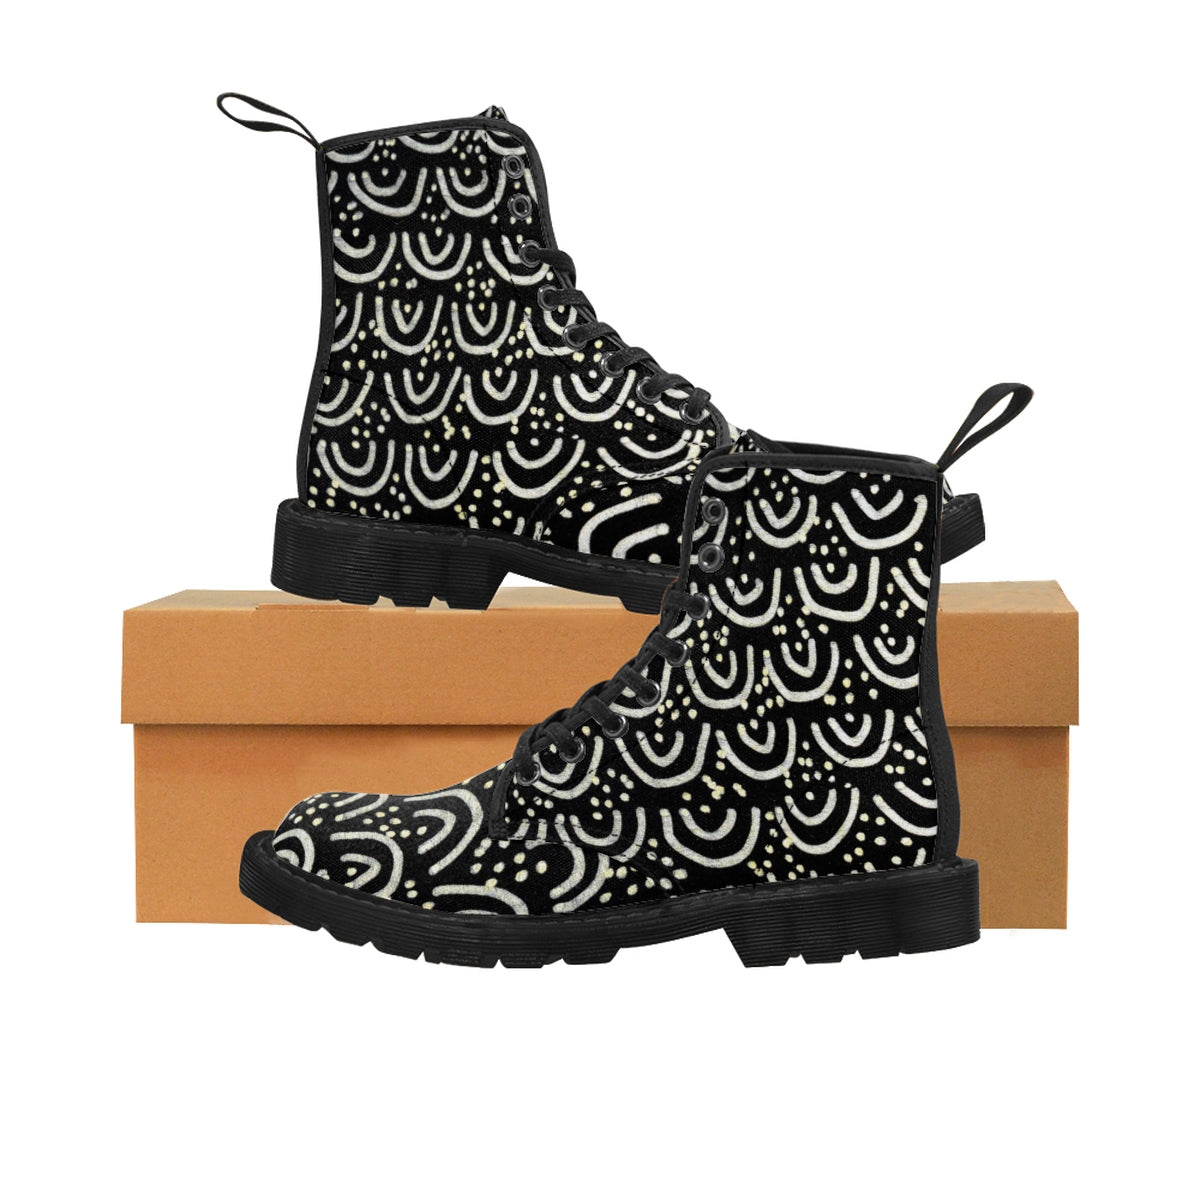 Black Mermaid Geometric Women's Winter Lace-up Toe Cap Boots Shoes(US Size 6.5-11)-Women's Boots-Black-US 9-Heidi Kimura Art LLC